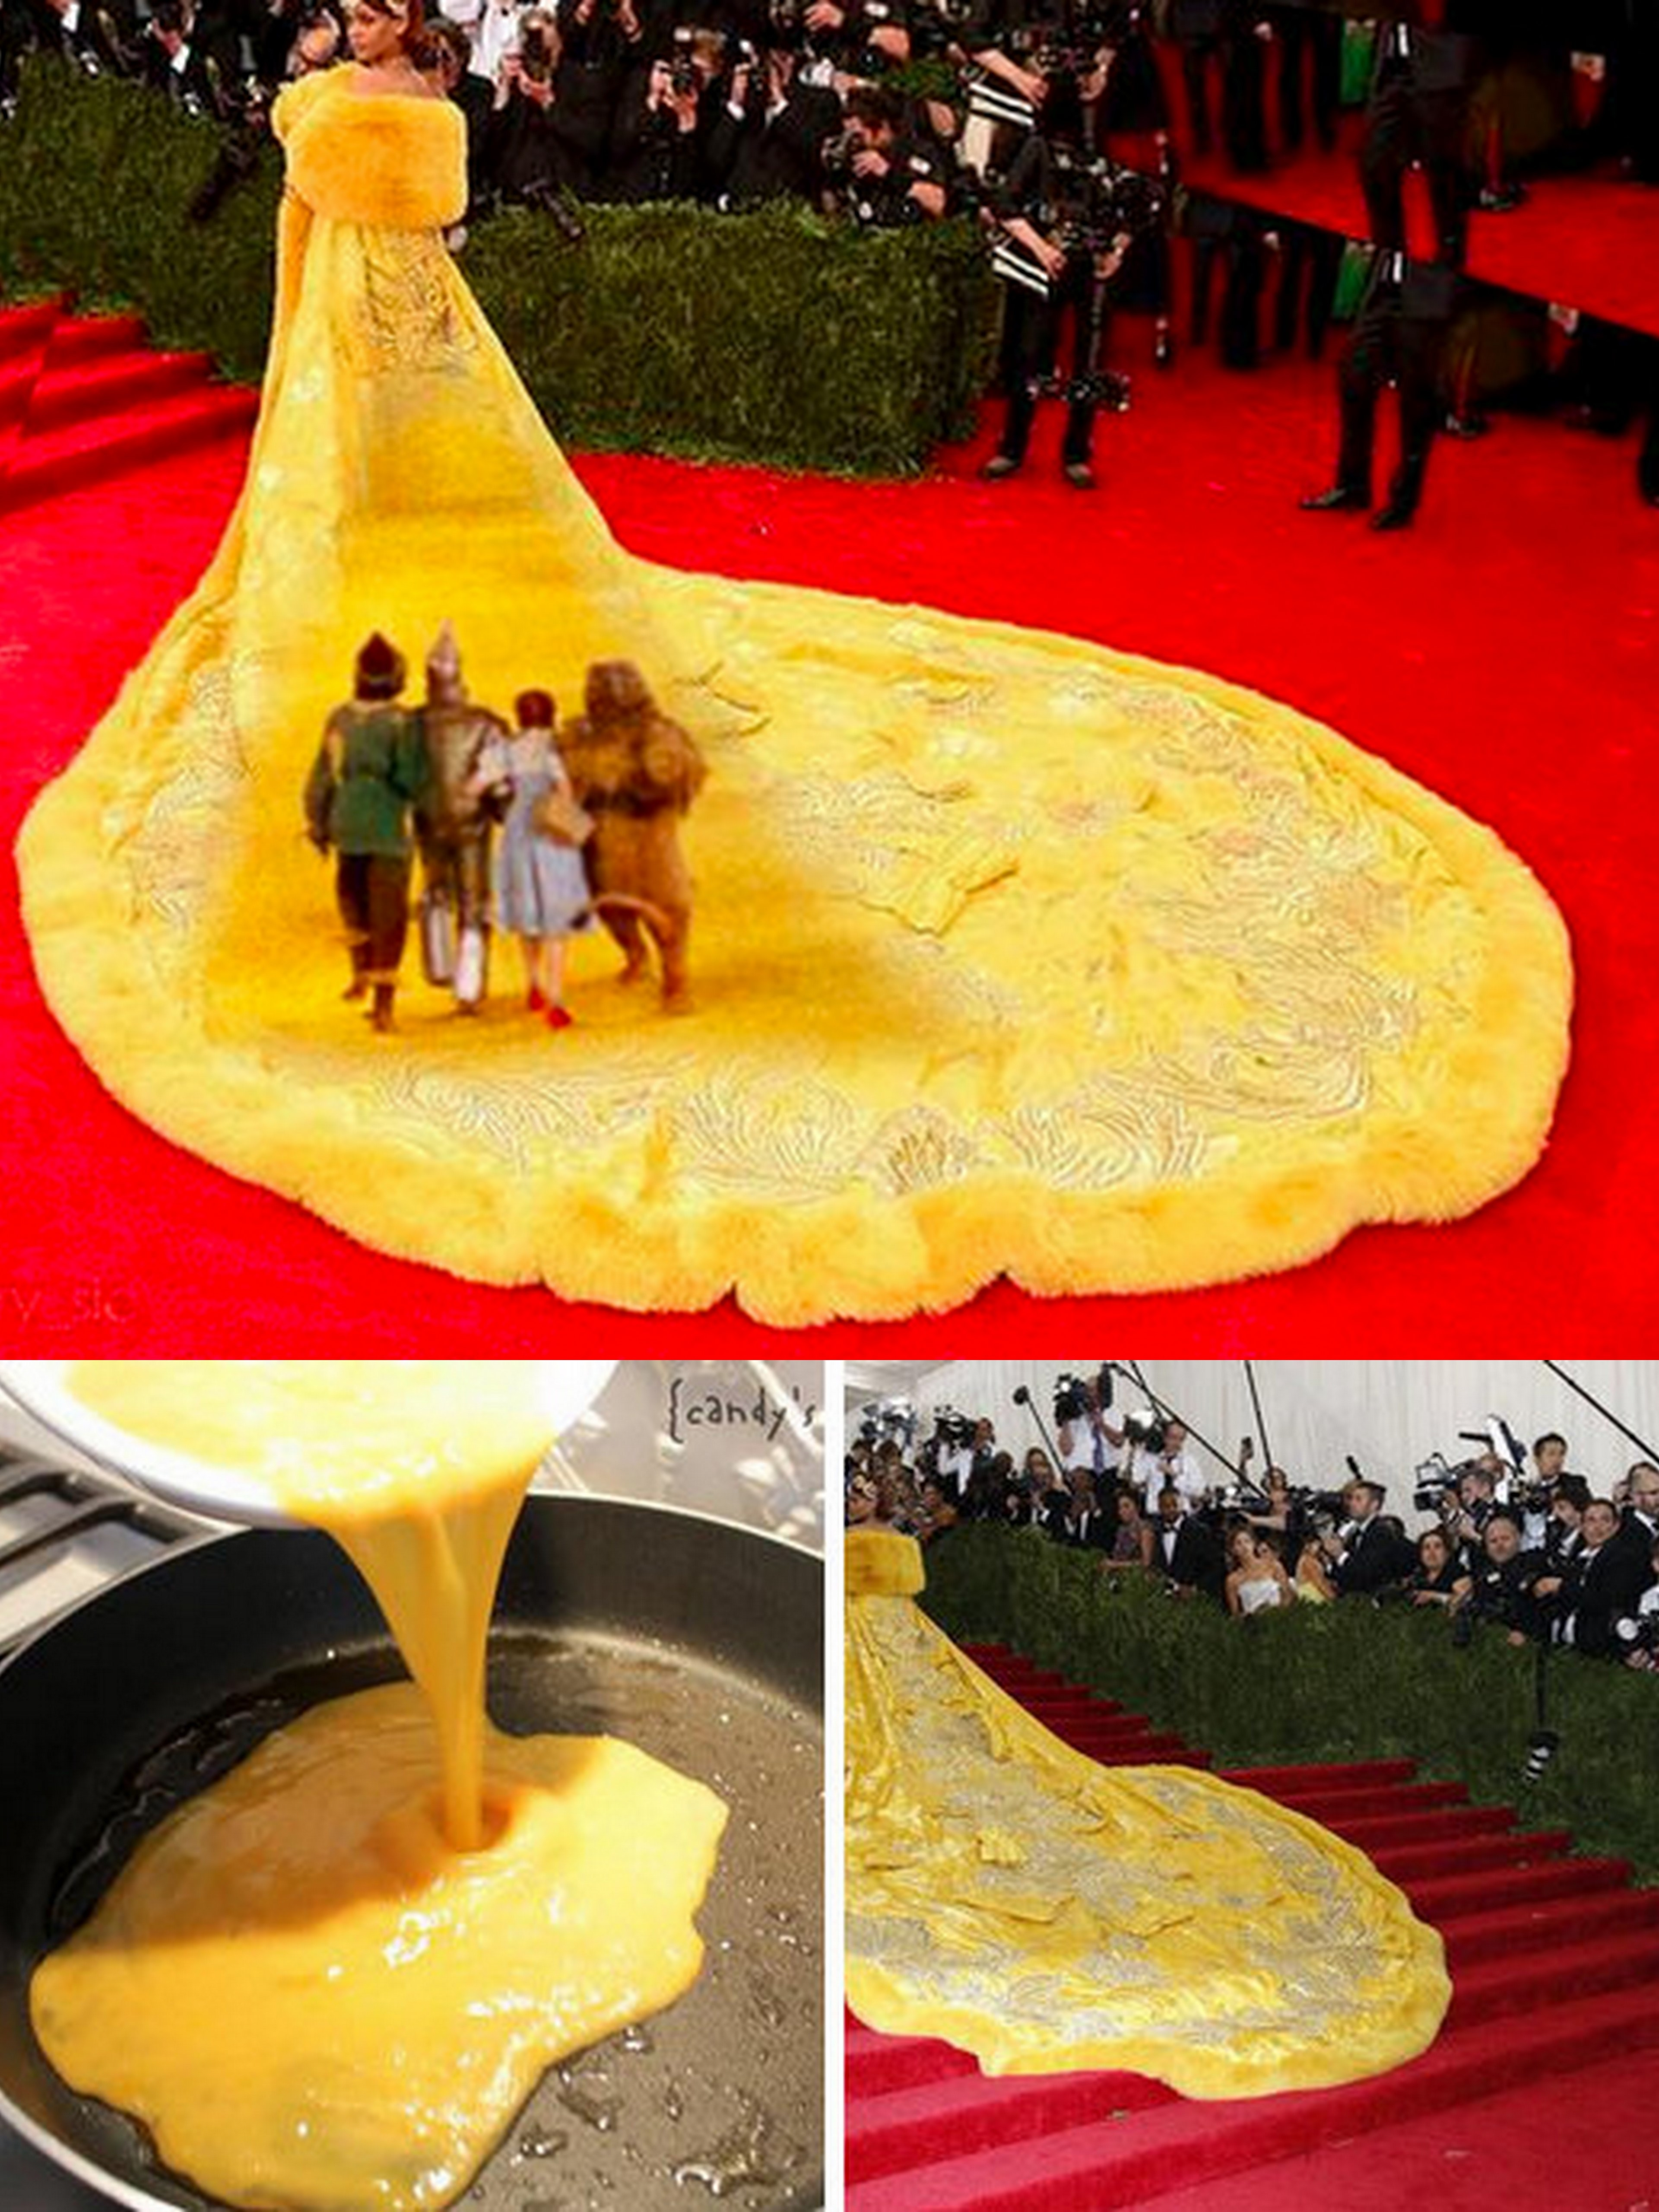 Rihanna's Met Gala gown becomes the meme iest thing online